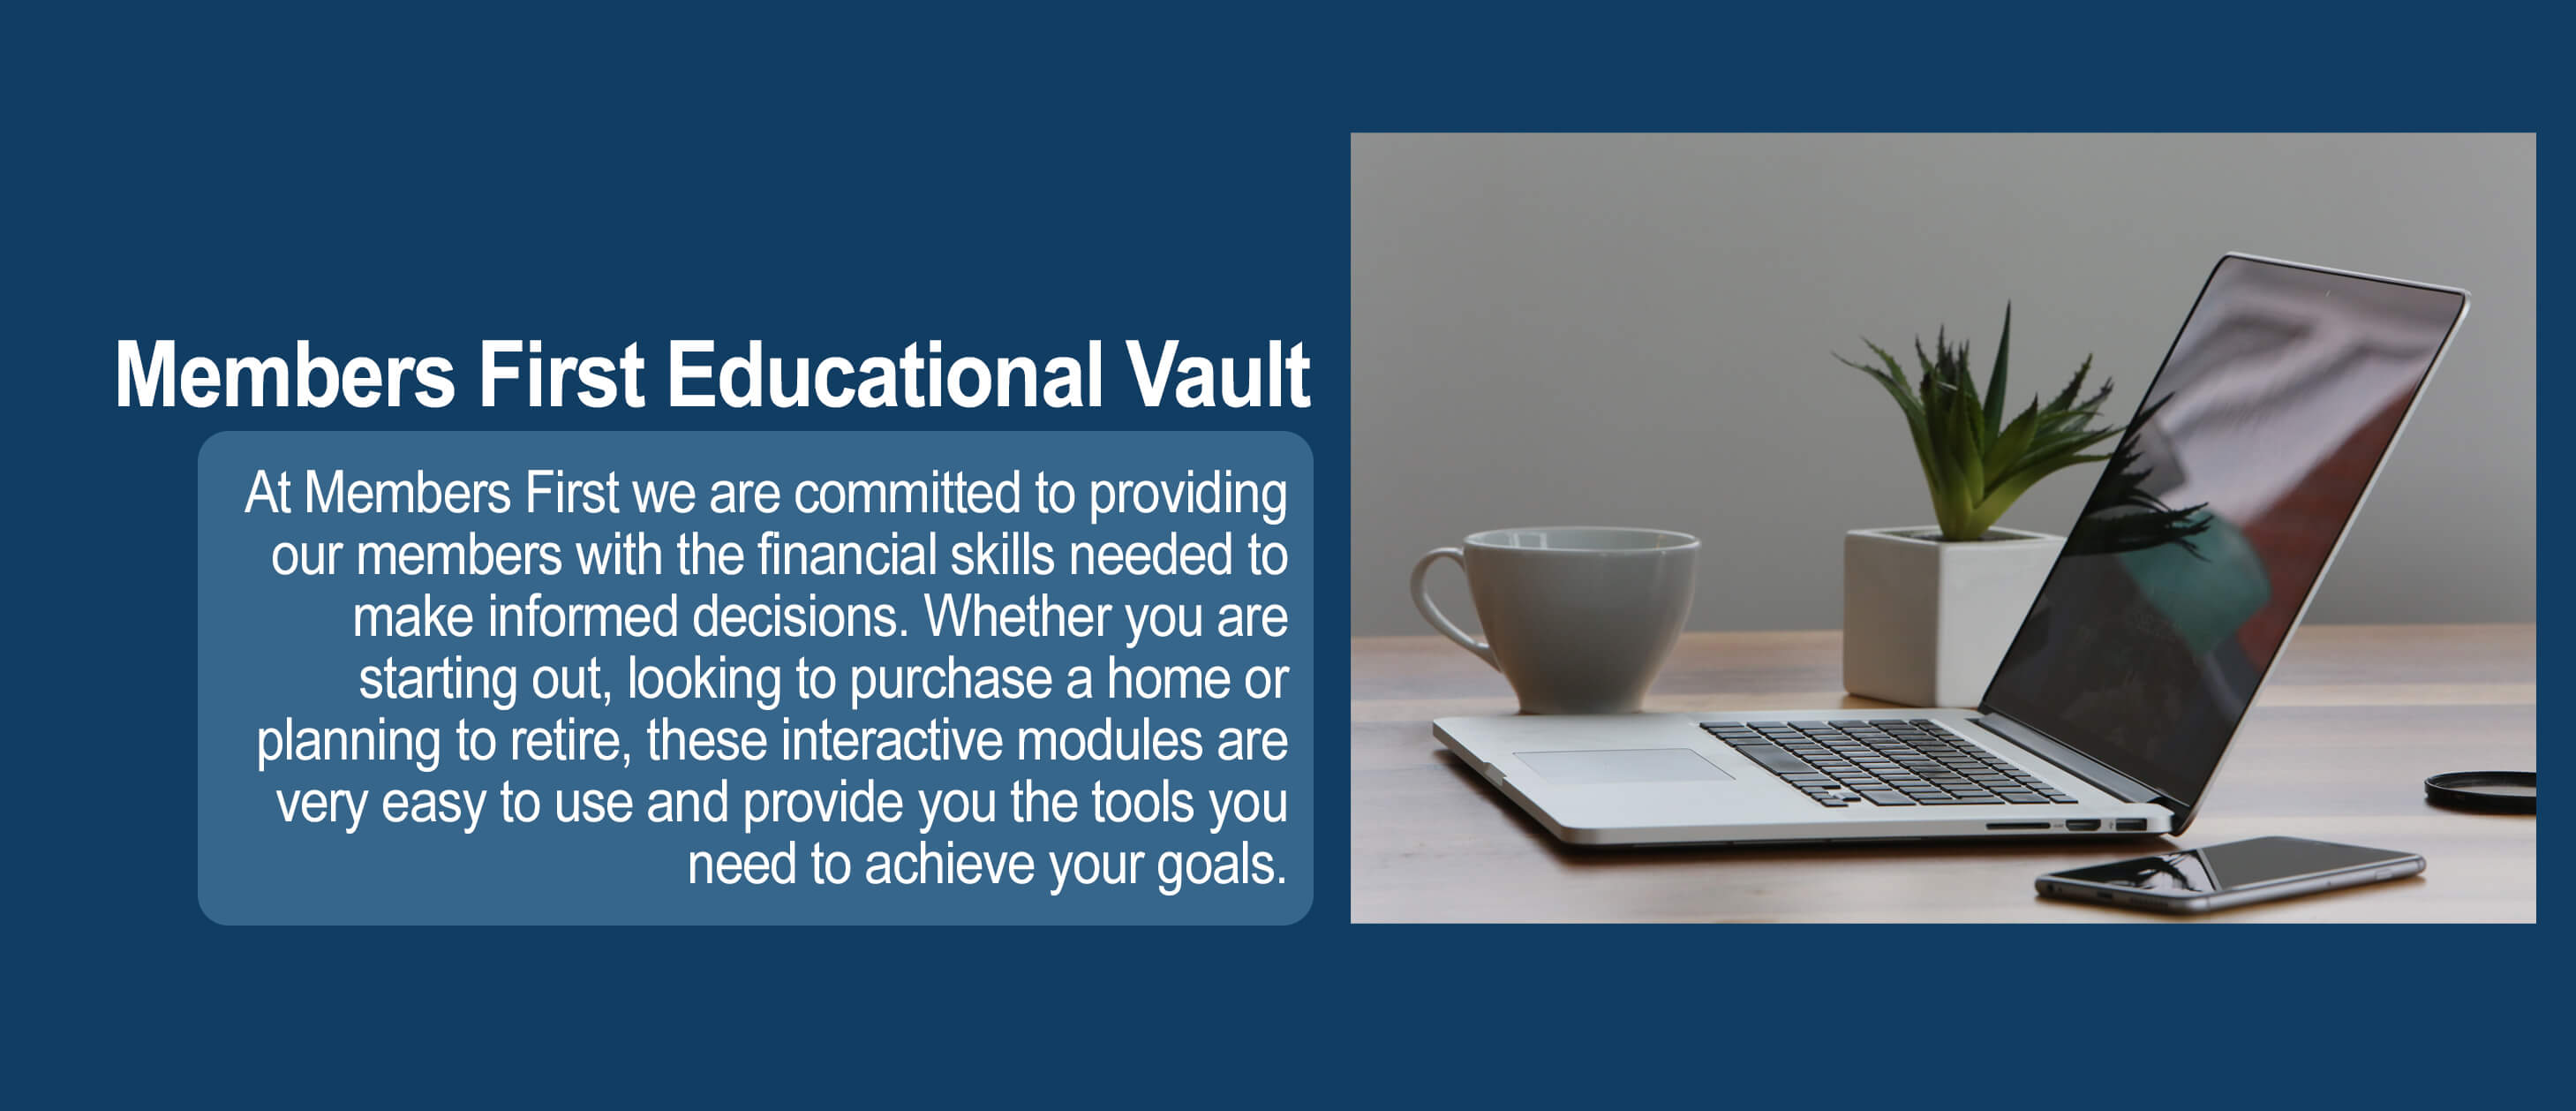 Members First Educational Vault